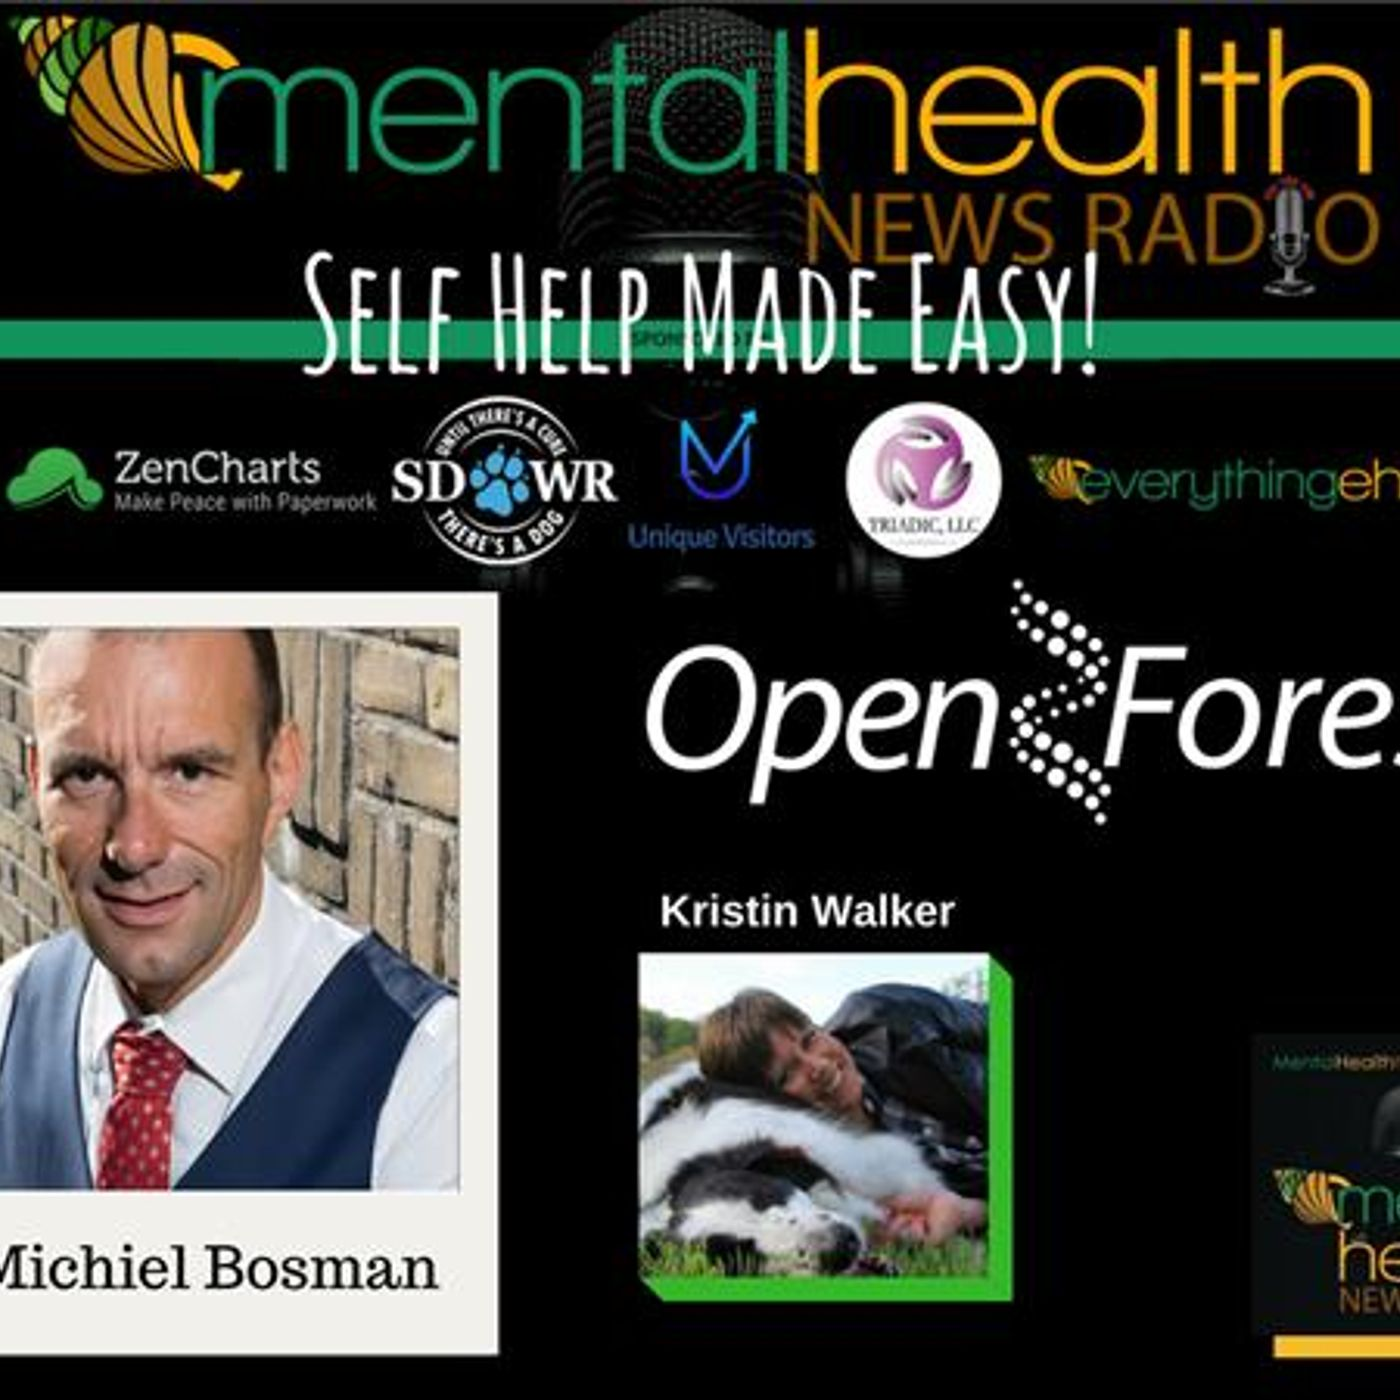 Mental Health News Radio - Self Help Made Easy! Open Forest's Dr. Michiel Bosman